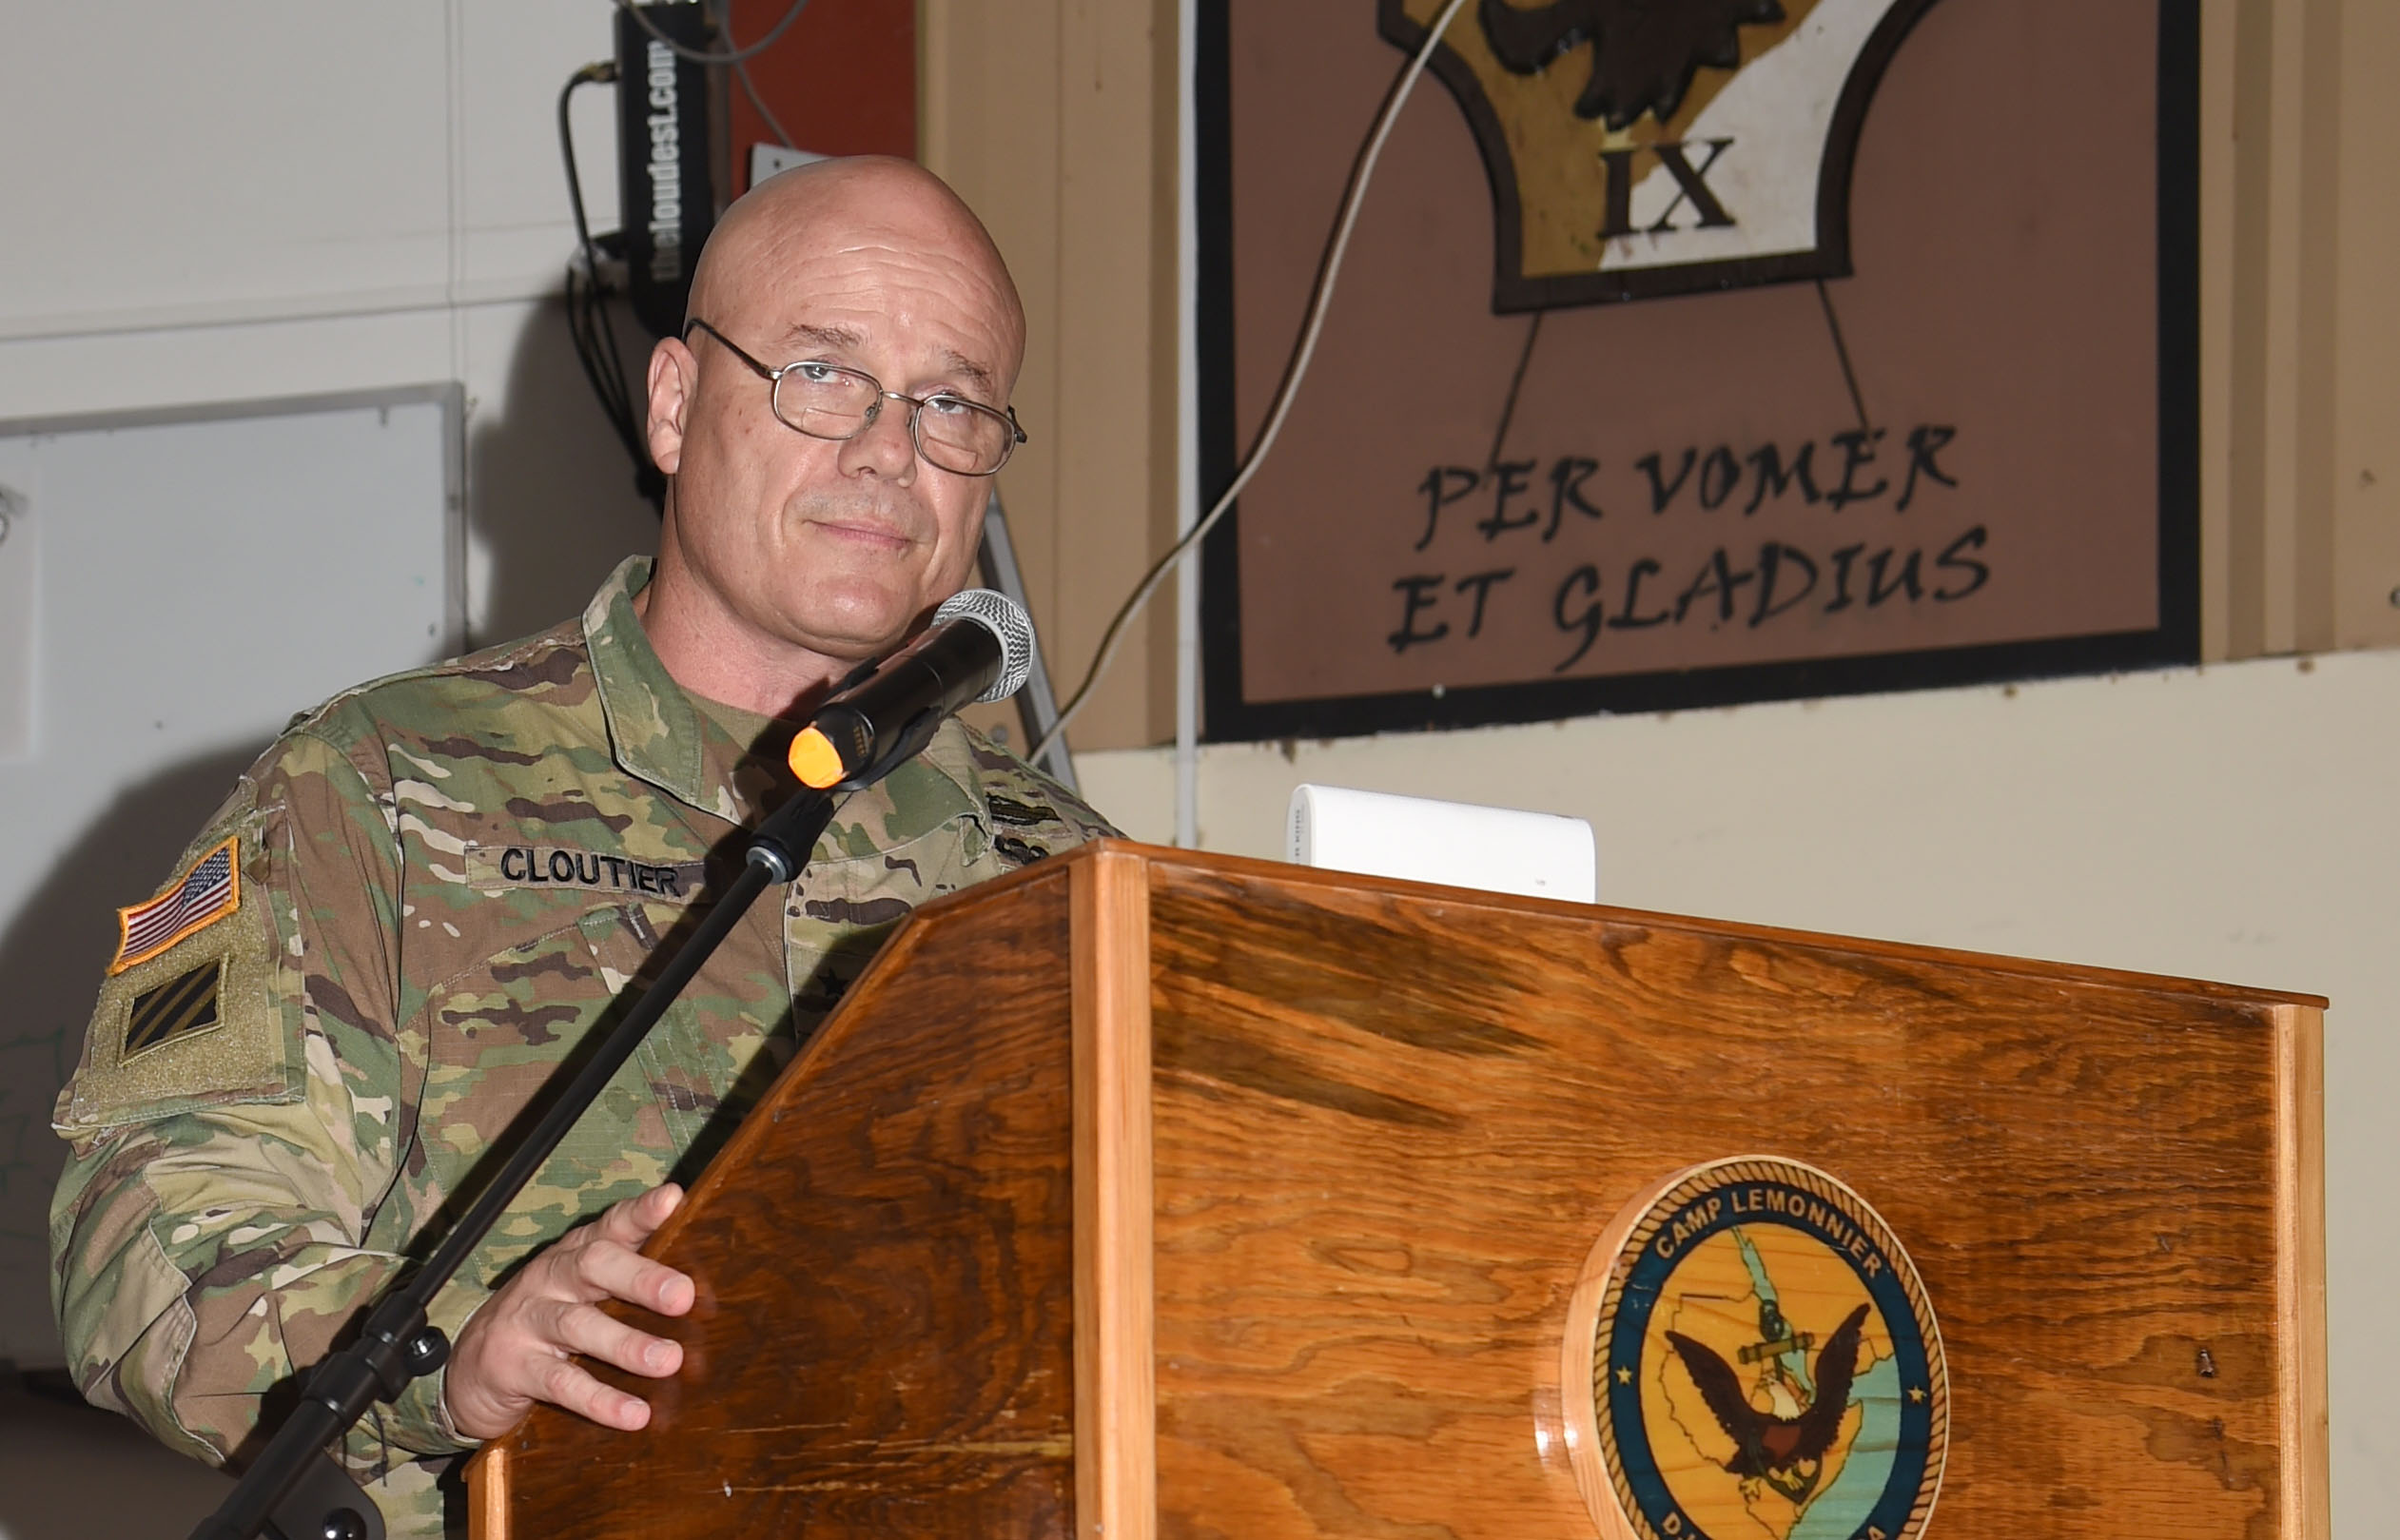 U.S. Army Maj. Gen. Roger Cloutier, Jr., U.S. Africa Command chief of staff, speaks to the crowd as the guest speaker of the Combined Joint Task Force – Horn of Africa 242nd Army Birthday Ball, at Camp Lemonnier, Djibouti, June 17, 2017. Approximately 300 deployed U.S. Soldiers, Sailors, Airmen, Marines, DoD civilians, and partner nations attended the event. (U.S. Air National Guard photo by Tech. Sgt. Andria Allmond)